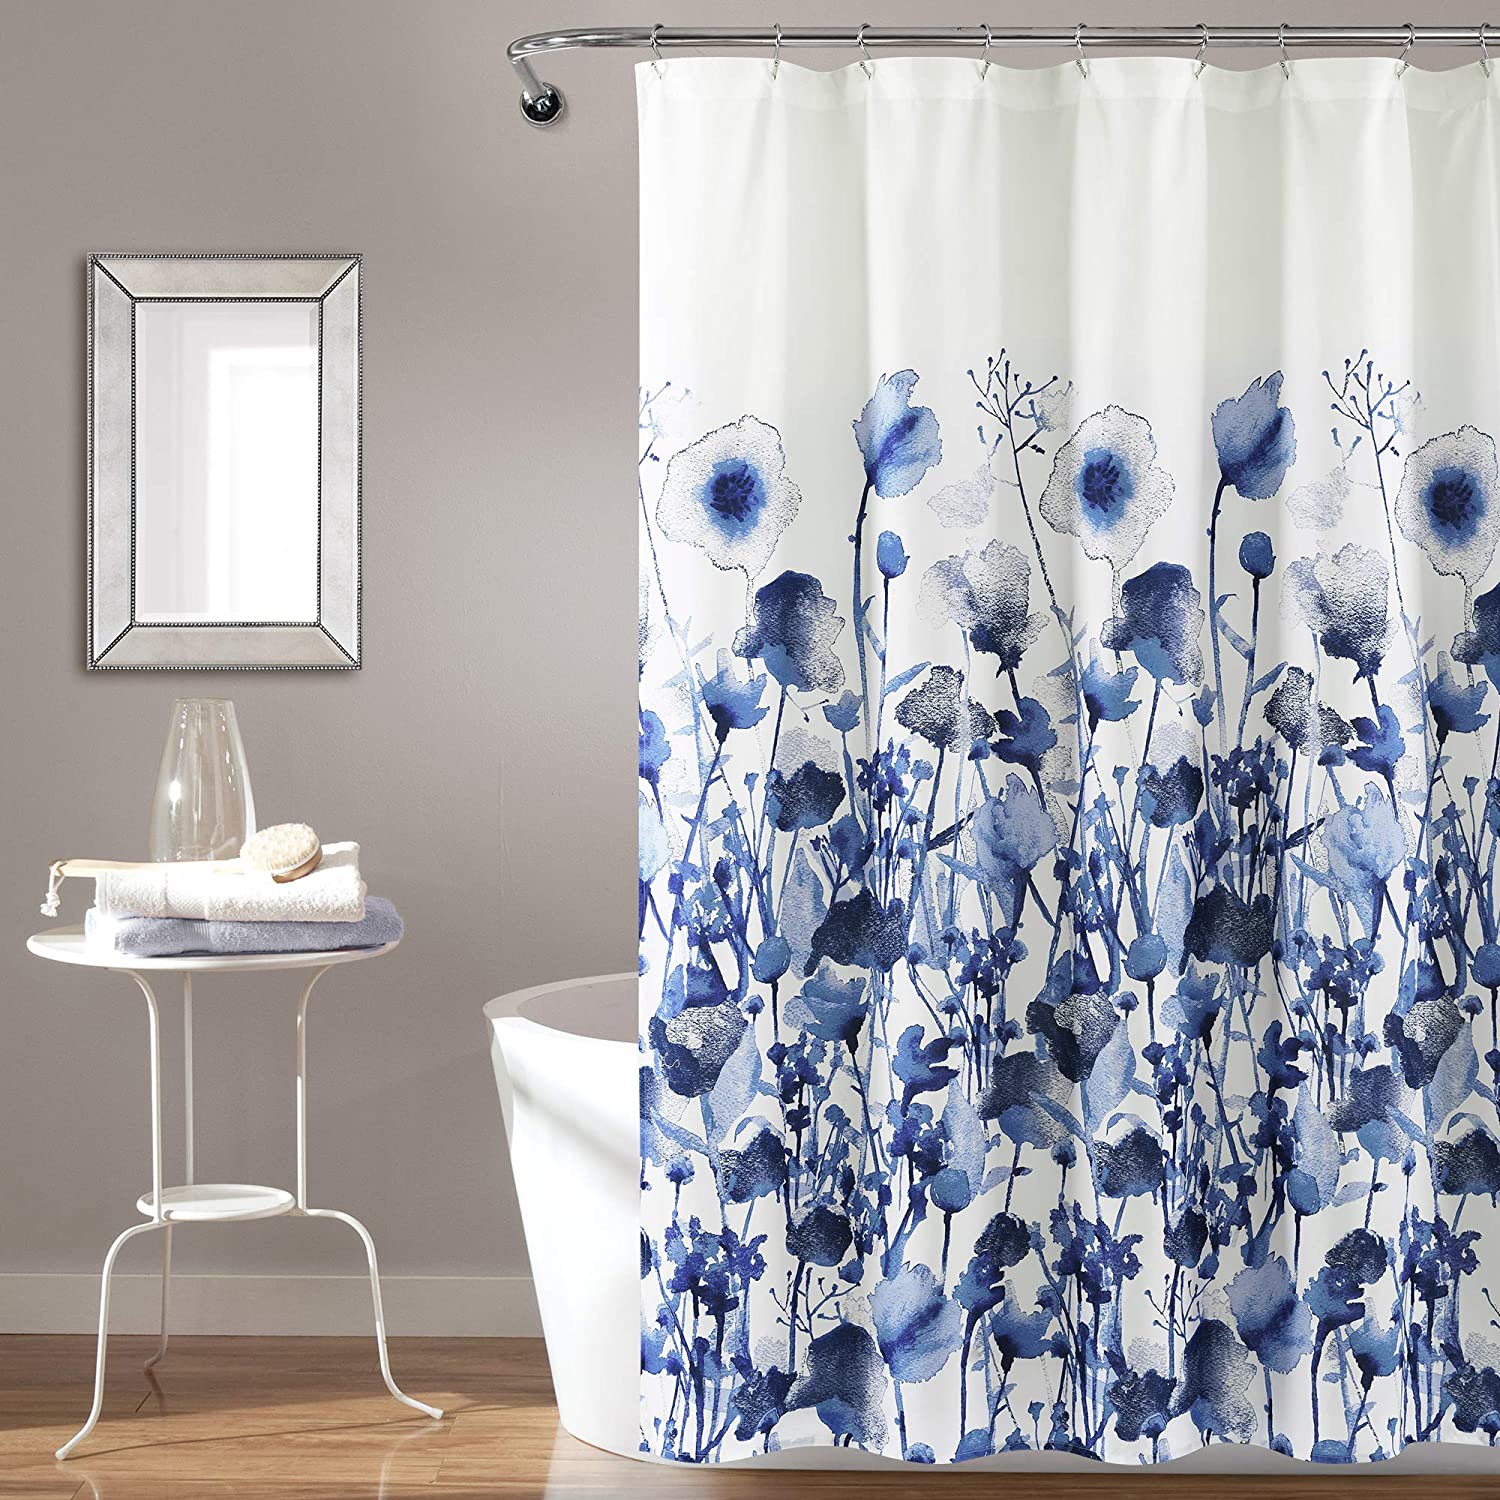 Lush Decor, Navy Zuri Flora Shower Curtain-Fabric Watercolor Floral Print Design, x 72